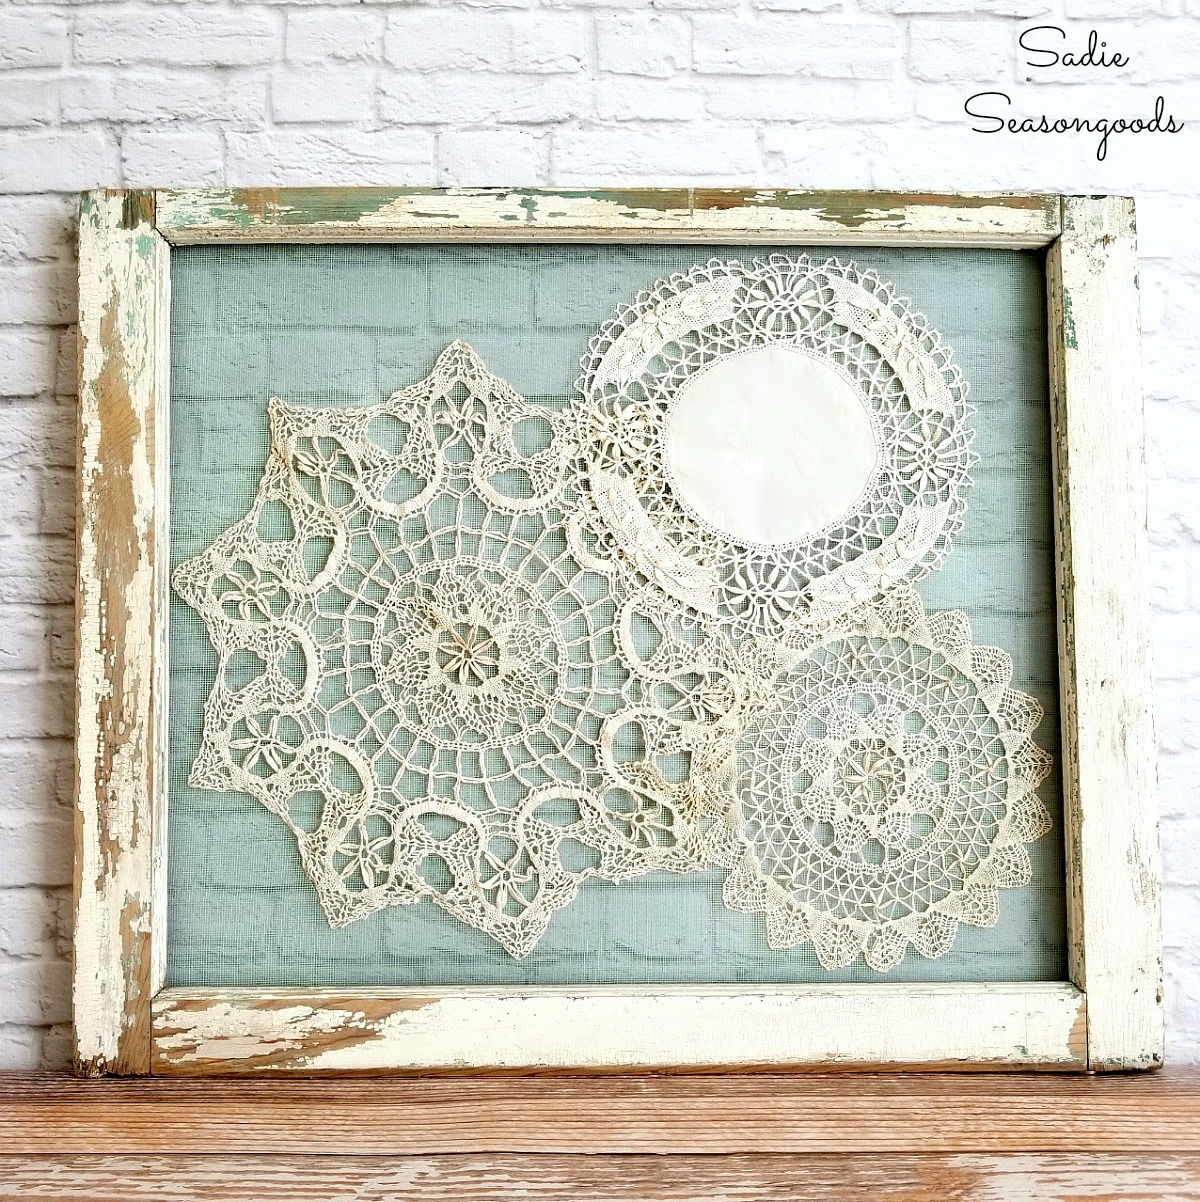 How to upcycle old windows into window frame decor using vintage crochet doilies by Sadie Seasongoods